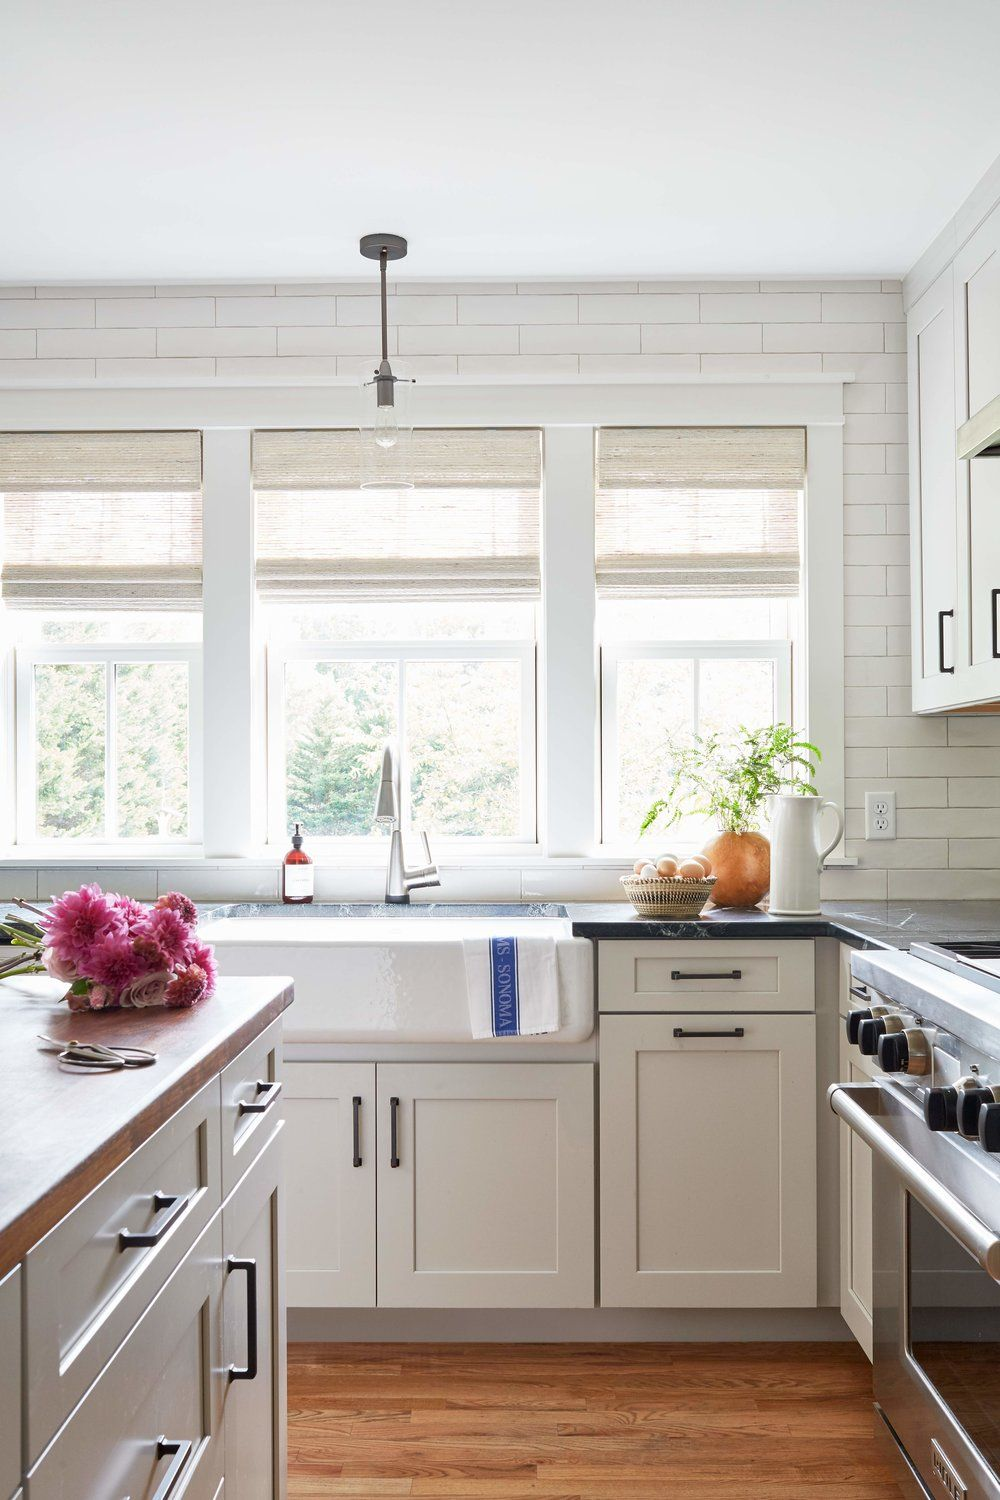 Best Oversized White Farmhouse Sink White Subway Tile Wall 400 x 300